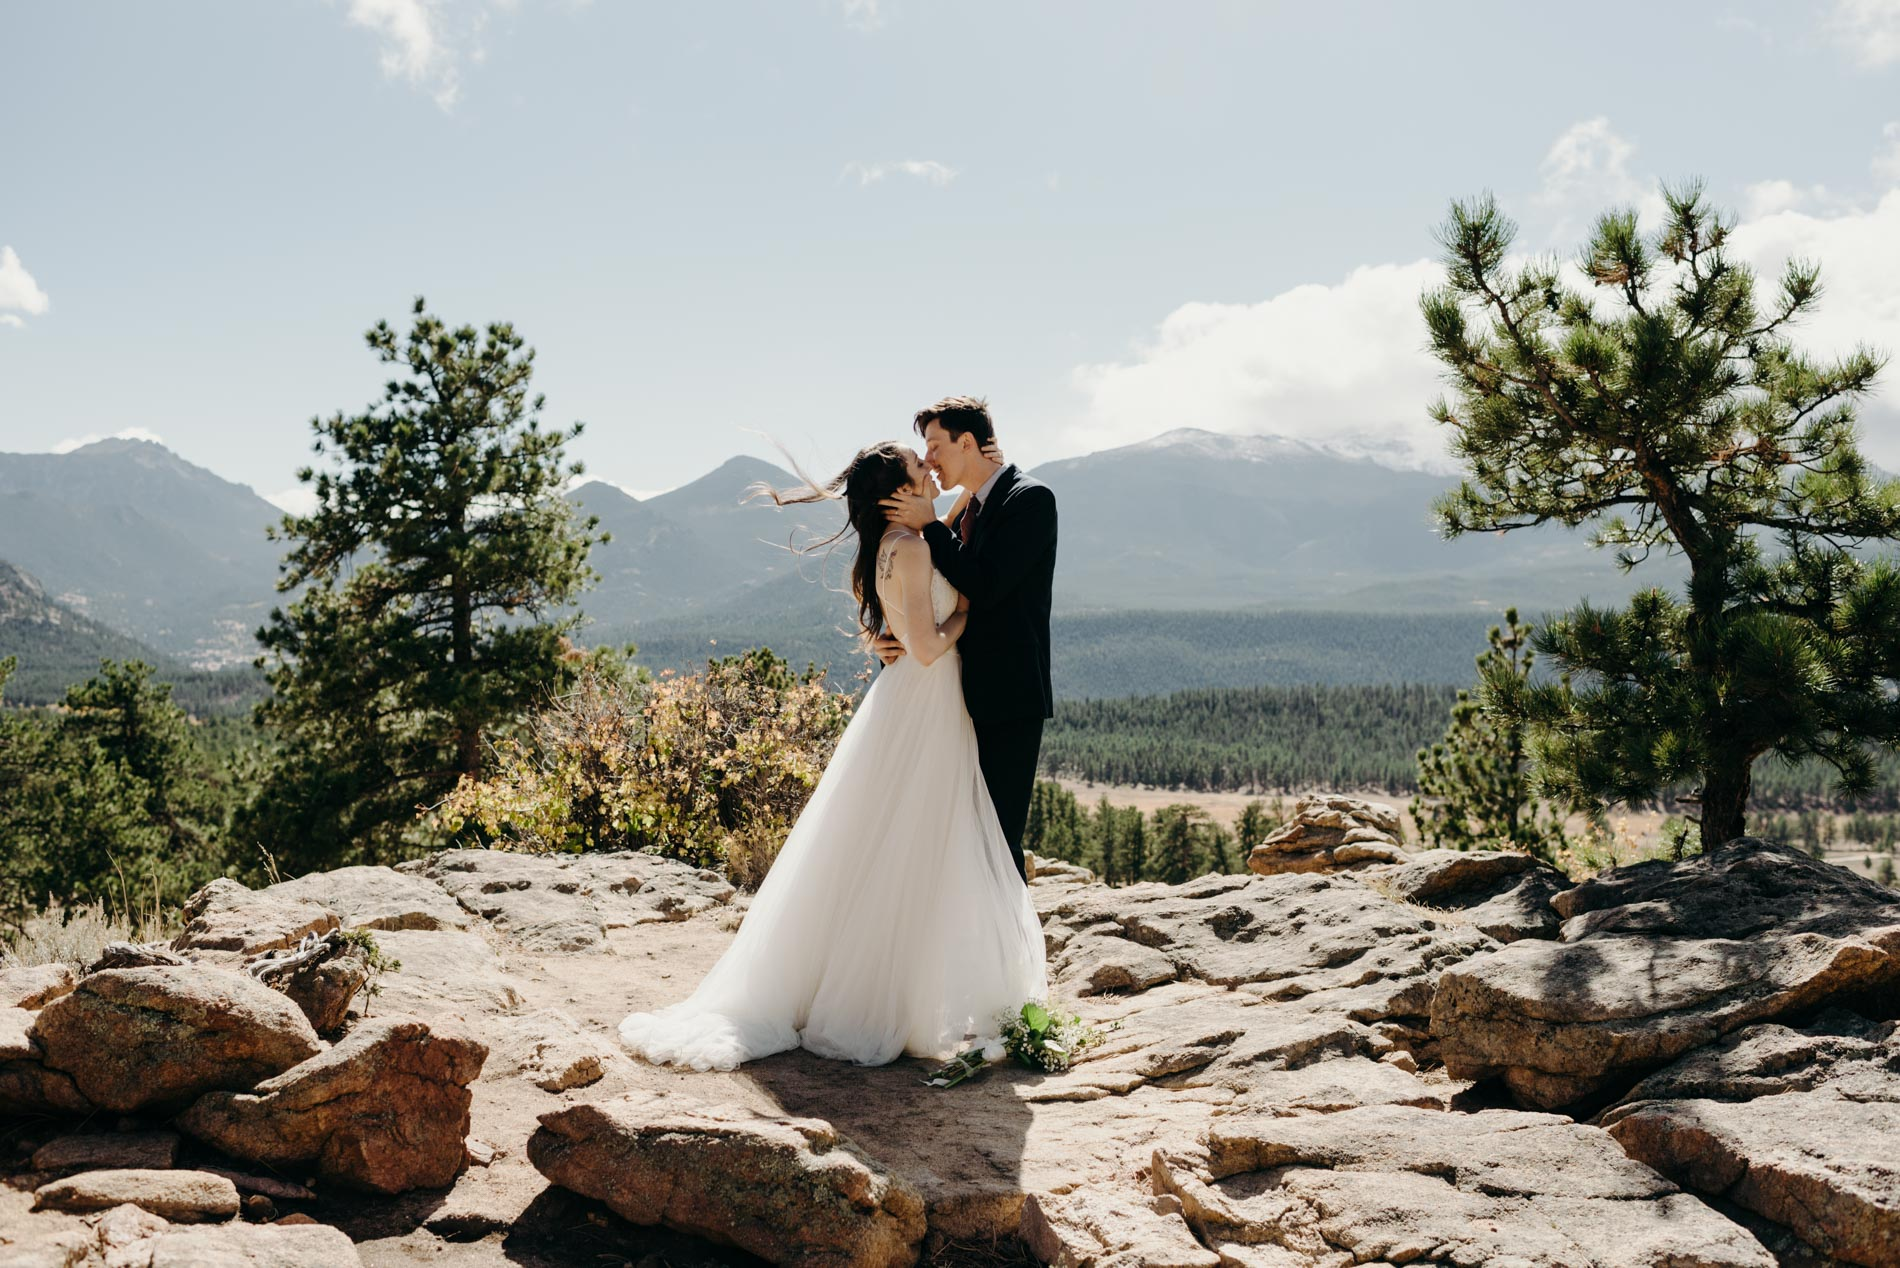 Adventurous-Wedding-Photography-Adventurous-Wedding-Photograph-Adventure-Elopement-Photographer-Adventurous-Elopement-Photograph-Adventurous-Elopement-Photographer-Adventurous-Destination-Elopement-Photographer-Destination-Elopement-Photography-Destination-Elopement-Packages-Telluride-Elopement-Telluride-Photographer-Telluride-Photography-Telluride-Destination-Wedding-Telluride-Wedding-San-Sophia-Overlook-Elopement-San-Sophia-Overlook-Wedding-San-Sophia-Overlook-Photographer-San-Sophia-Overlook-Photography-Colorado-Elopement-Colorado-Elopement-Photographer-Colorado-Elopement-Photography-Iceland-Elopement-Photographer-Iceland-Elopement-Packages-Hiking-Wedding-Hiking-Elopement-Photographer-Mountain-Wedding-Photographer-Mountain-Wedding-Photography-Colorado-Mountain-Wedding-Colorado-Mountain-Elopement-Adventure-wedding-adventure-elopement-Teresa-Woodhull-photography-Teresa-Woodhull-photographer-Intimate-wedding-photographer-Intimate-wedding-photography-elopement-photographer-traveling-wedding-photographer-traveling-elopement-photographer-Adventure-elopement-photographer-Adventure-wedding-photographer-Destination-wedding-Destination-elopement-Destination-wedding-photography-Destination-wedding-photographer-Teresa-Woodhull-Intimate-Wedding-Photography-Teresa-Woodhull-Intimate-Wedding-Photographer-Teresa-Woodhull-Elopement-Photography-Teresa-Woodhull-Elopement-Photographer-Elopement-Photography-Intimate-Elopement-Photographer-Intimate-Elopement-Photography-Elopement-Wedding-Weddings-Elope-Elopements-Intimate-Weddings-Adventure-Weddings-Adventure-Wedding-Photograph-Adventure-Wedding-Photograph